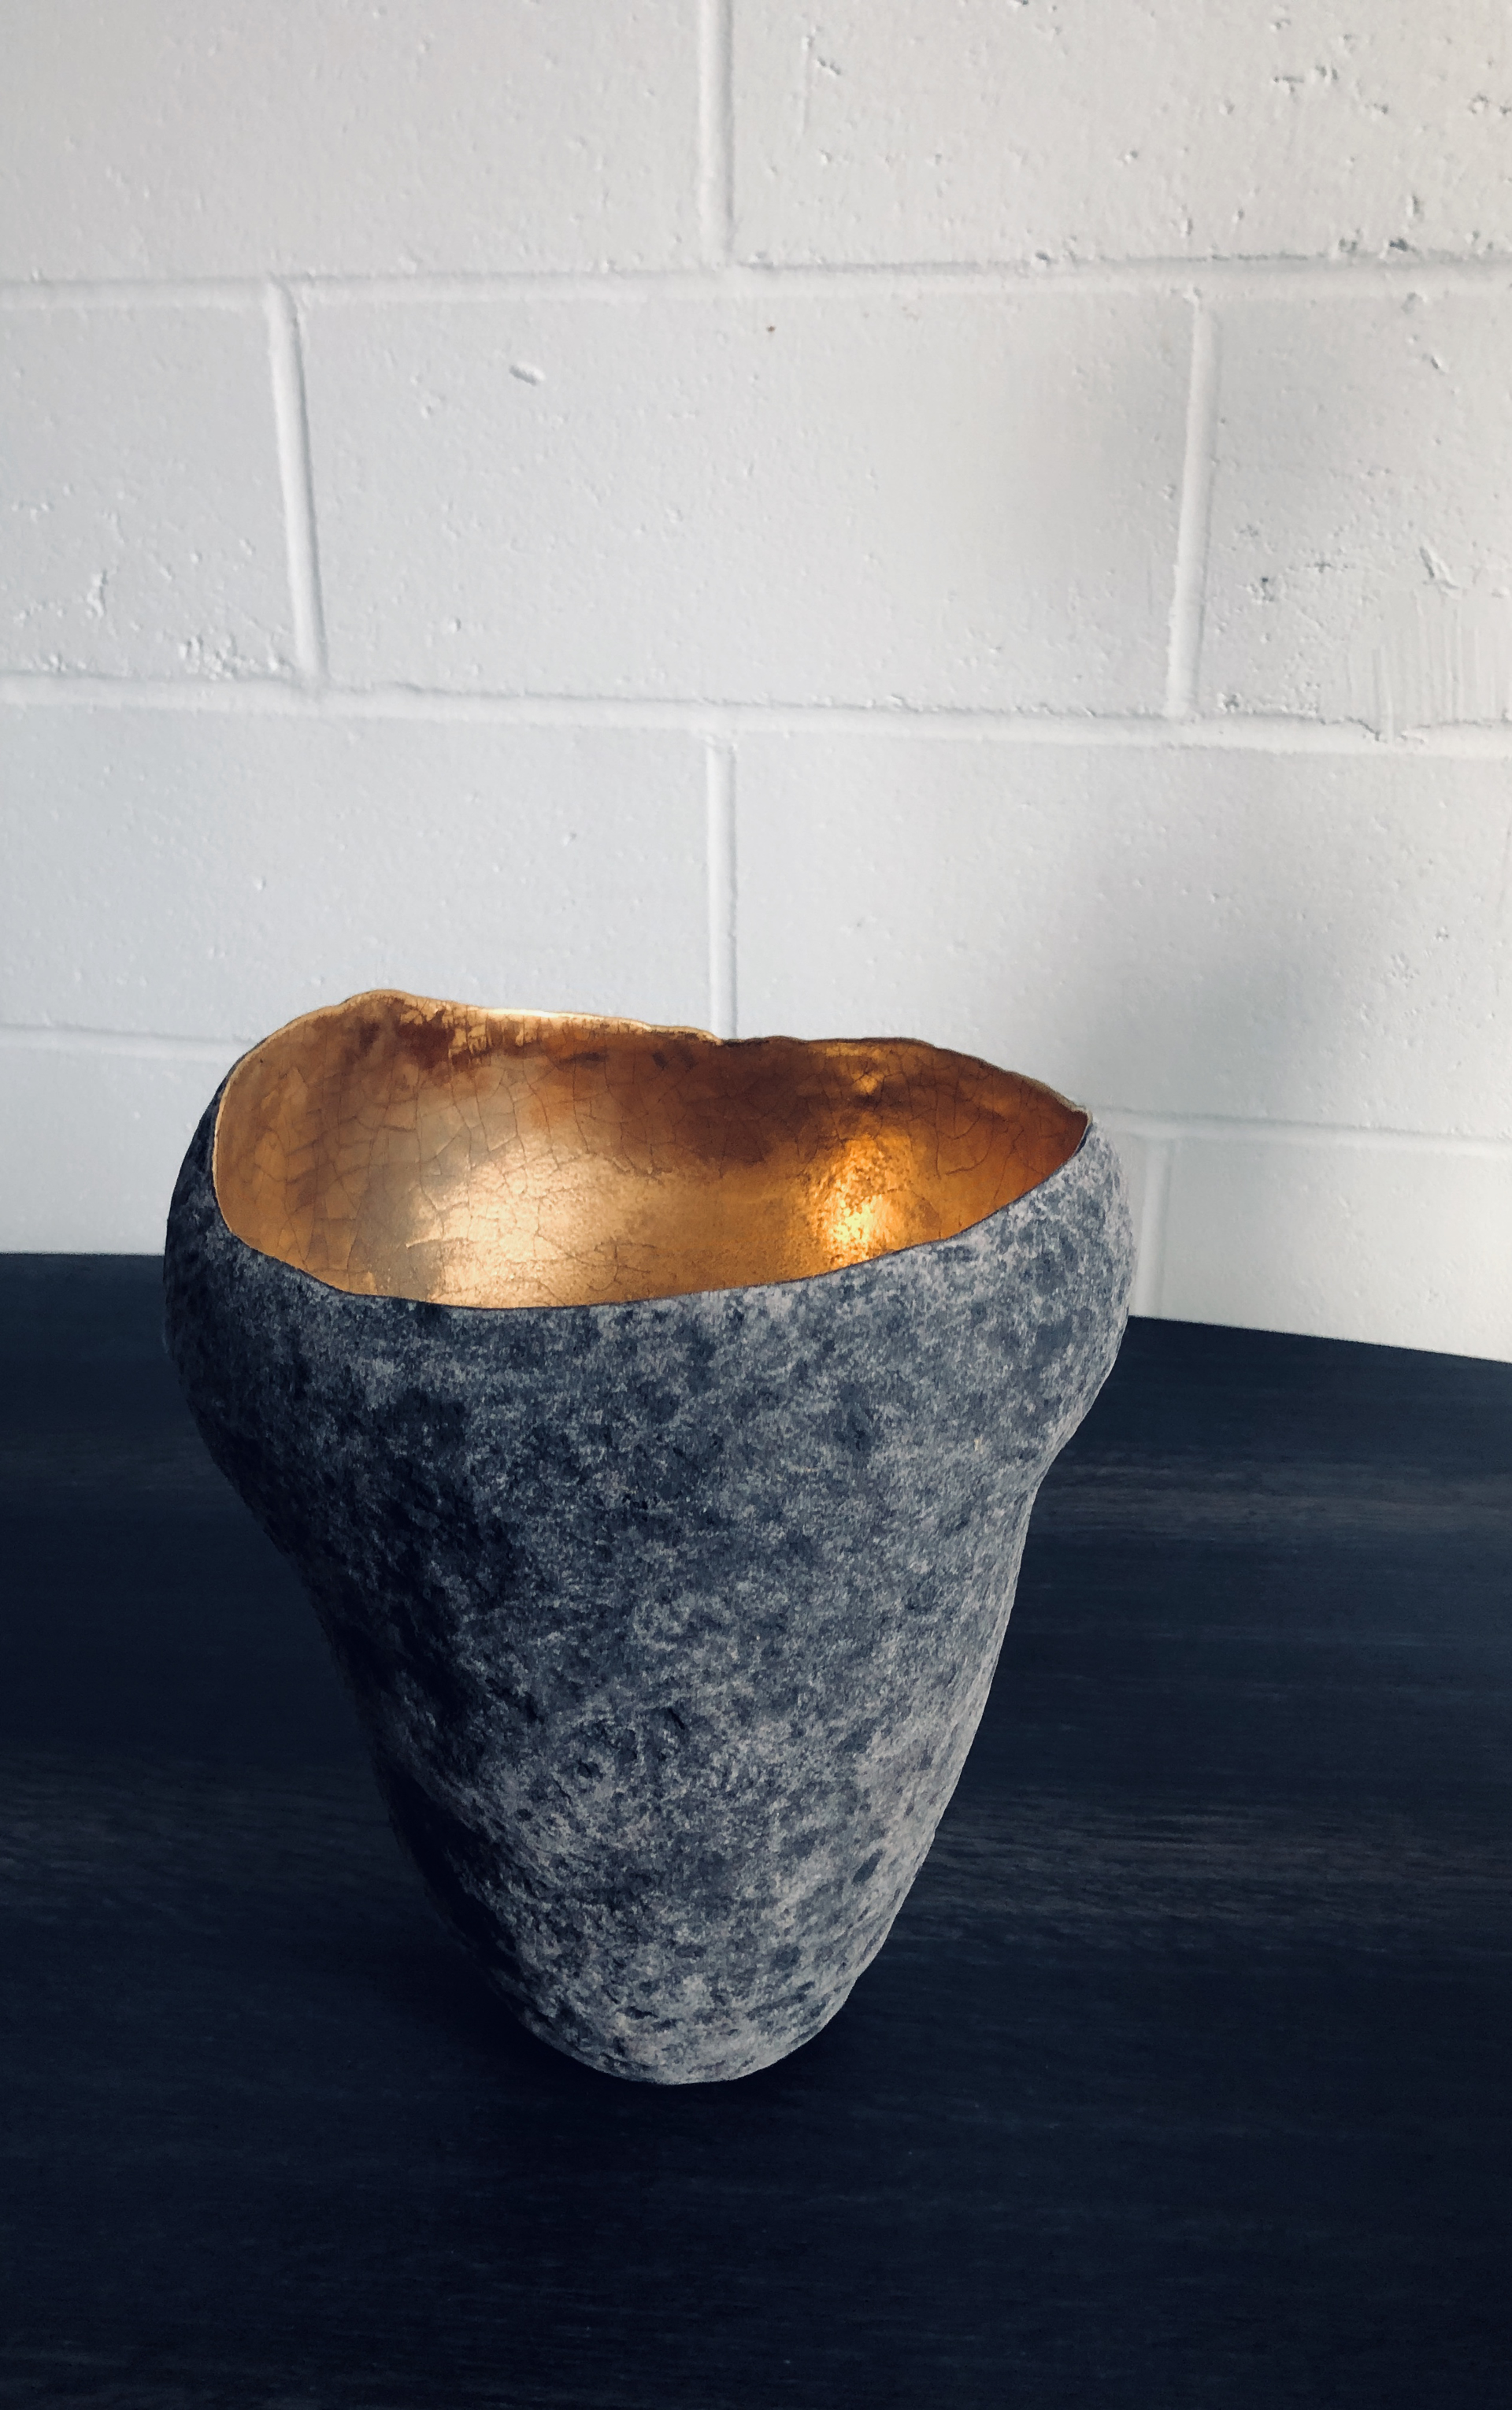 Ceramic vase by Cristina Salusti